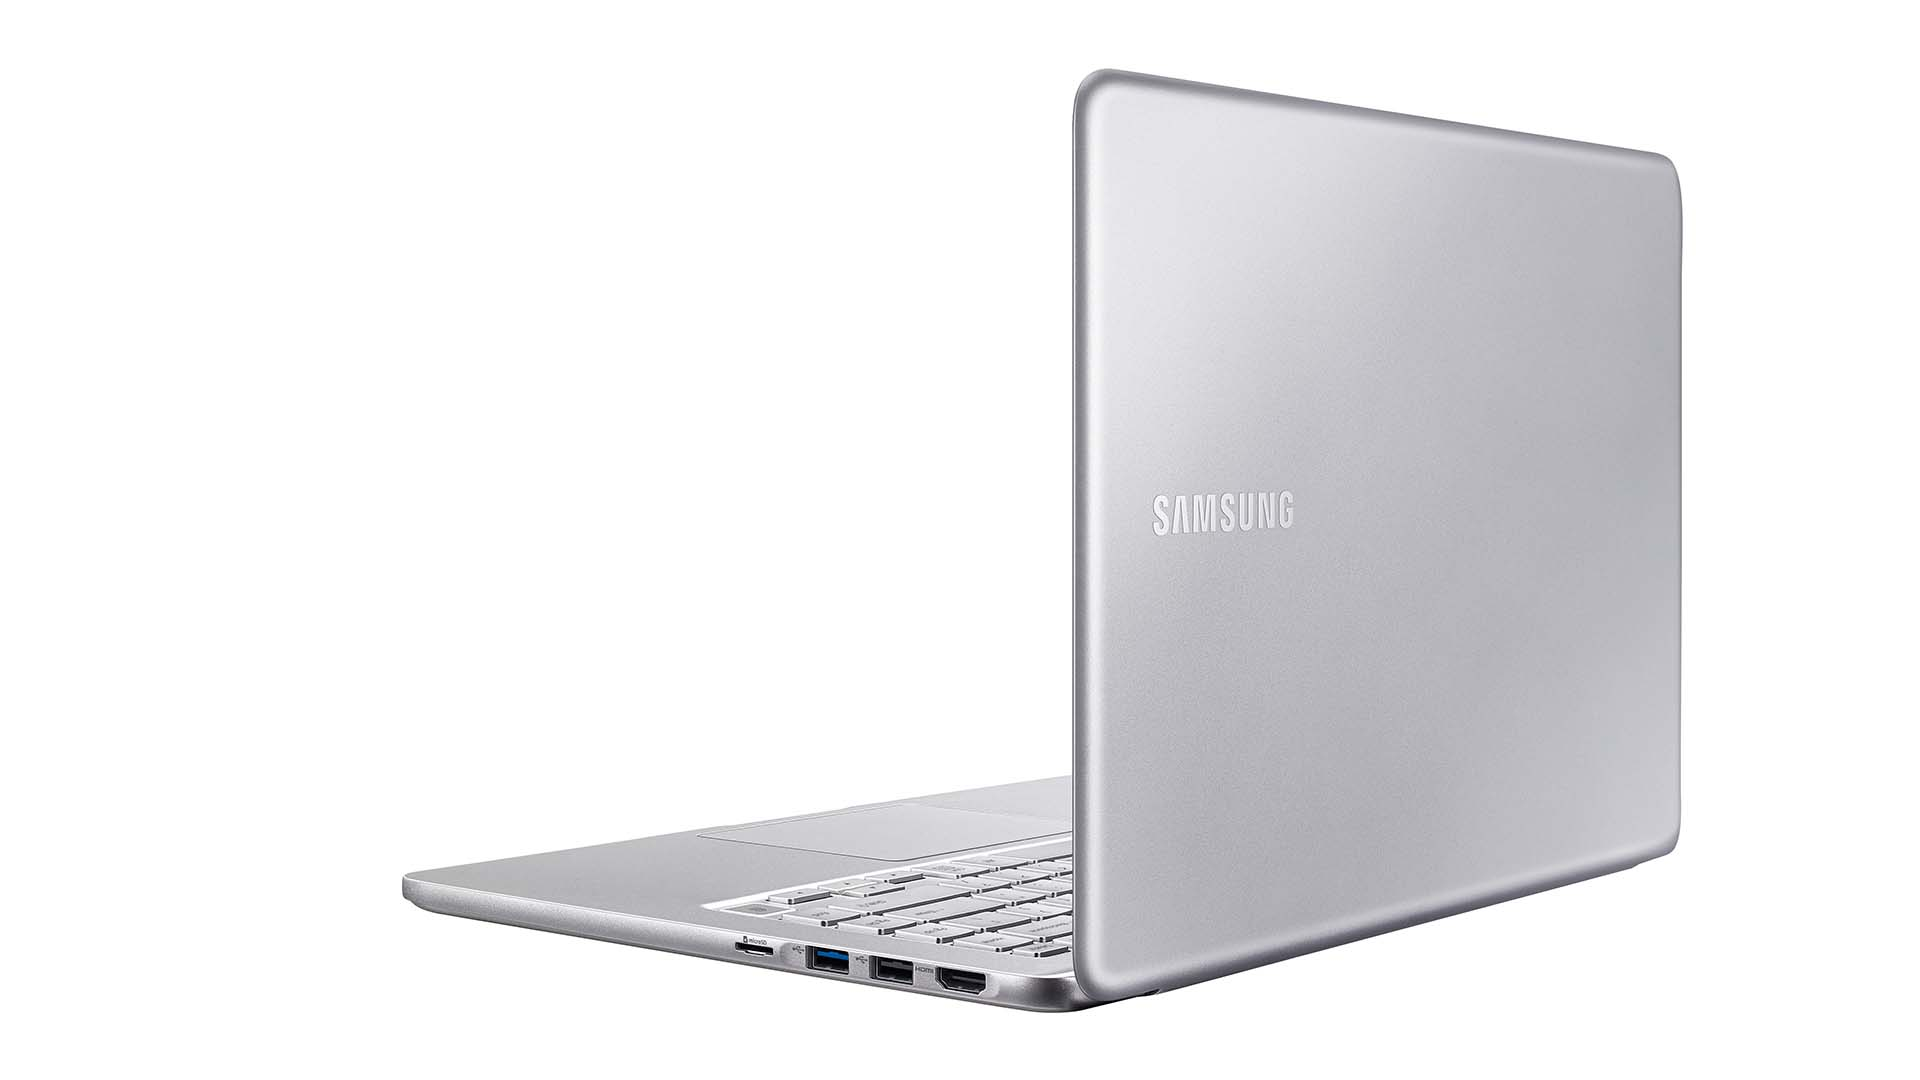 Intel 八代 Core i7 處理器,Samsung Notebook 9 Pen 與 Notebook 9(2018)亮相